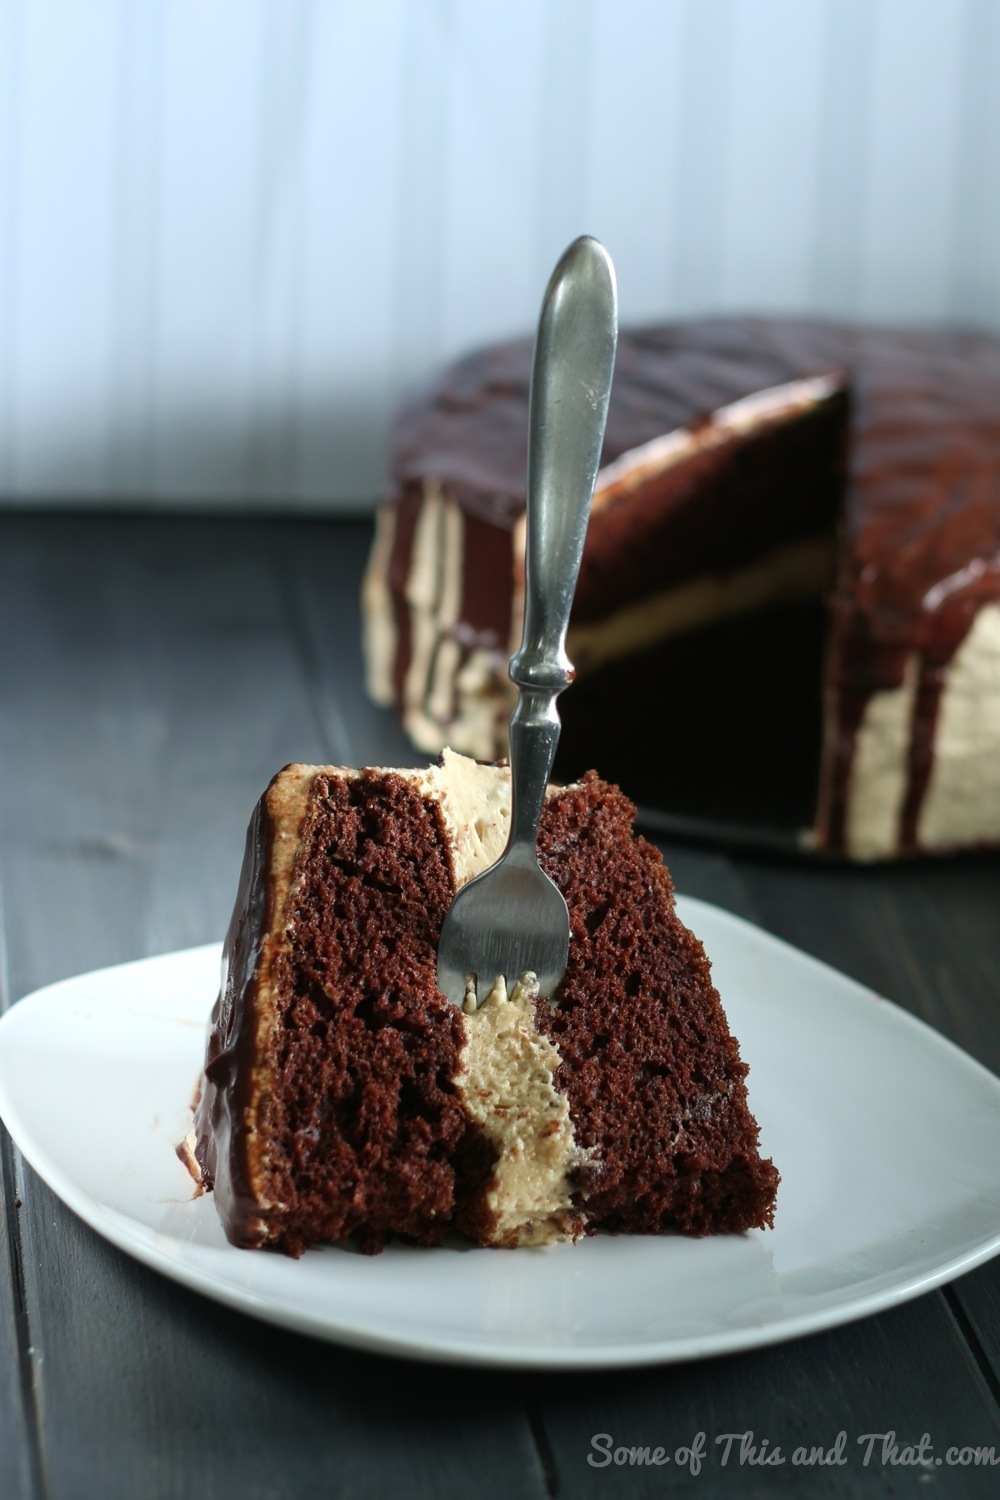 Chocolate Cake with Peanut Butter Cheesecake Filling!